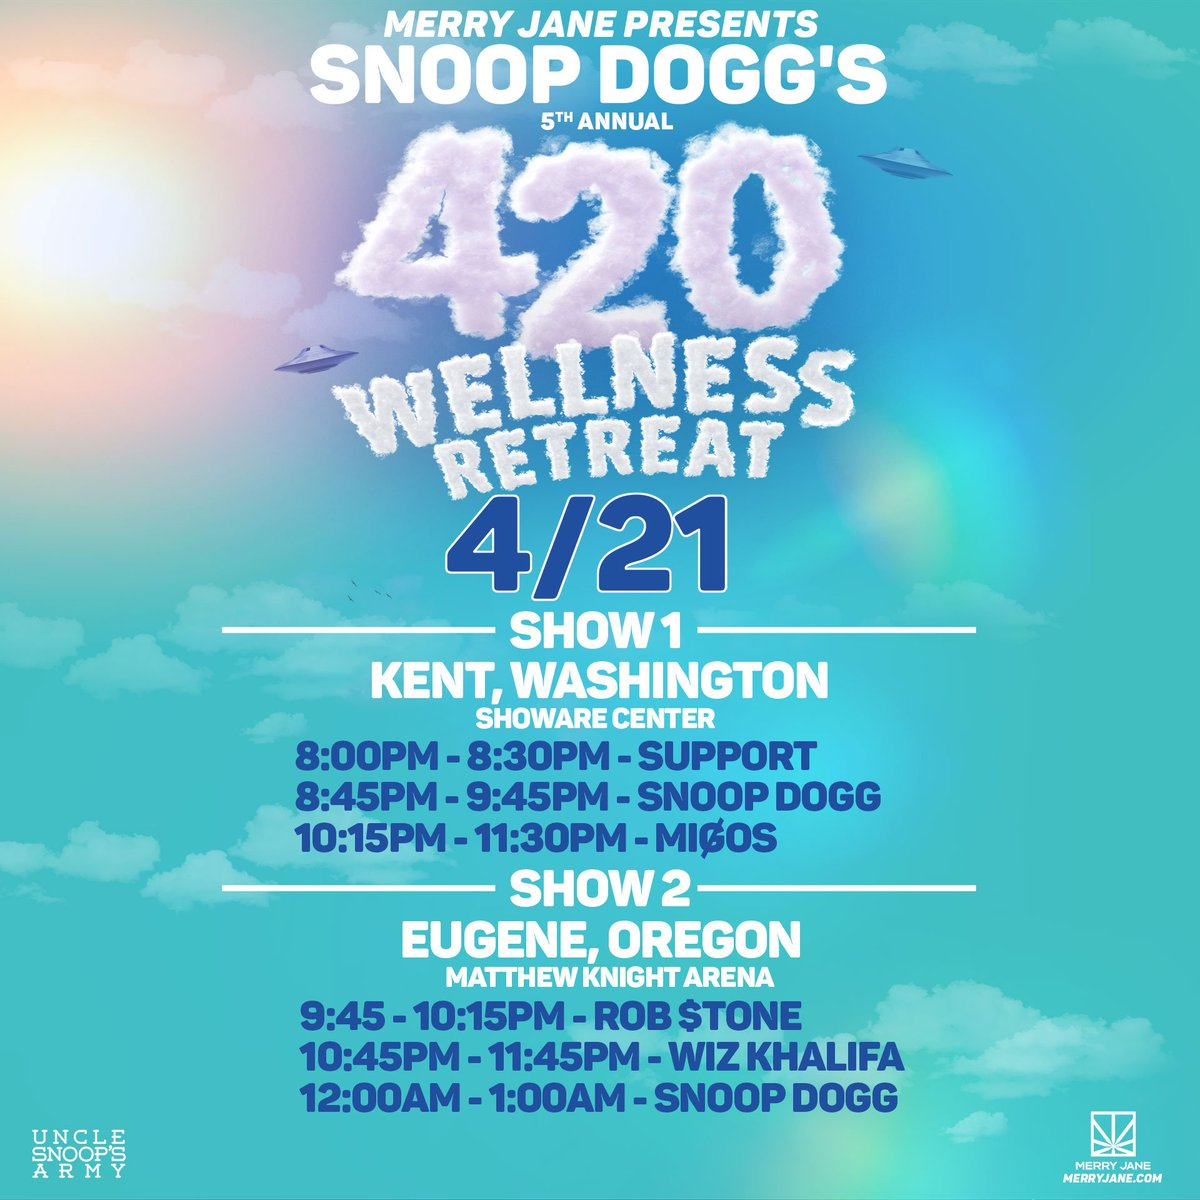 oregon n washington see yall tonite ! last minute #WellnessRetreat tickets ➡️https://t.co/rmfLxbmOGb https://t.co/mte2Ju2L9o